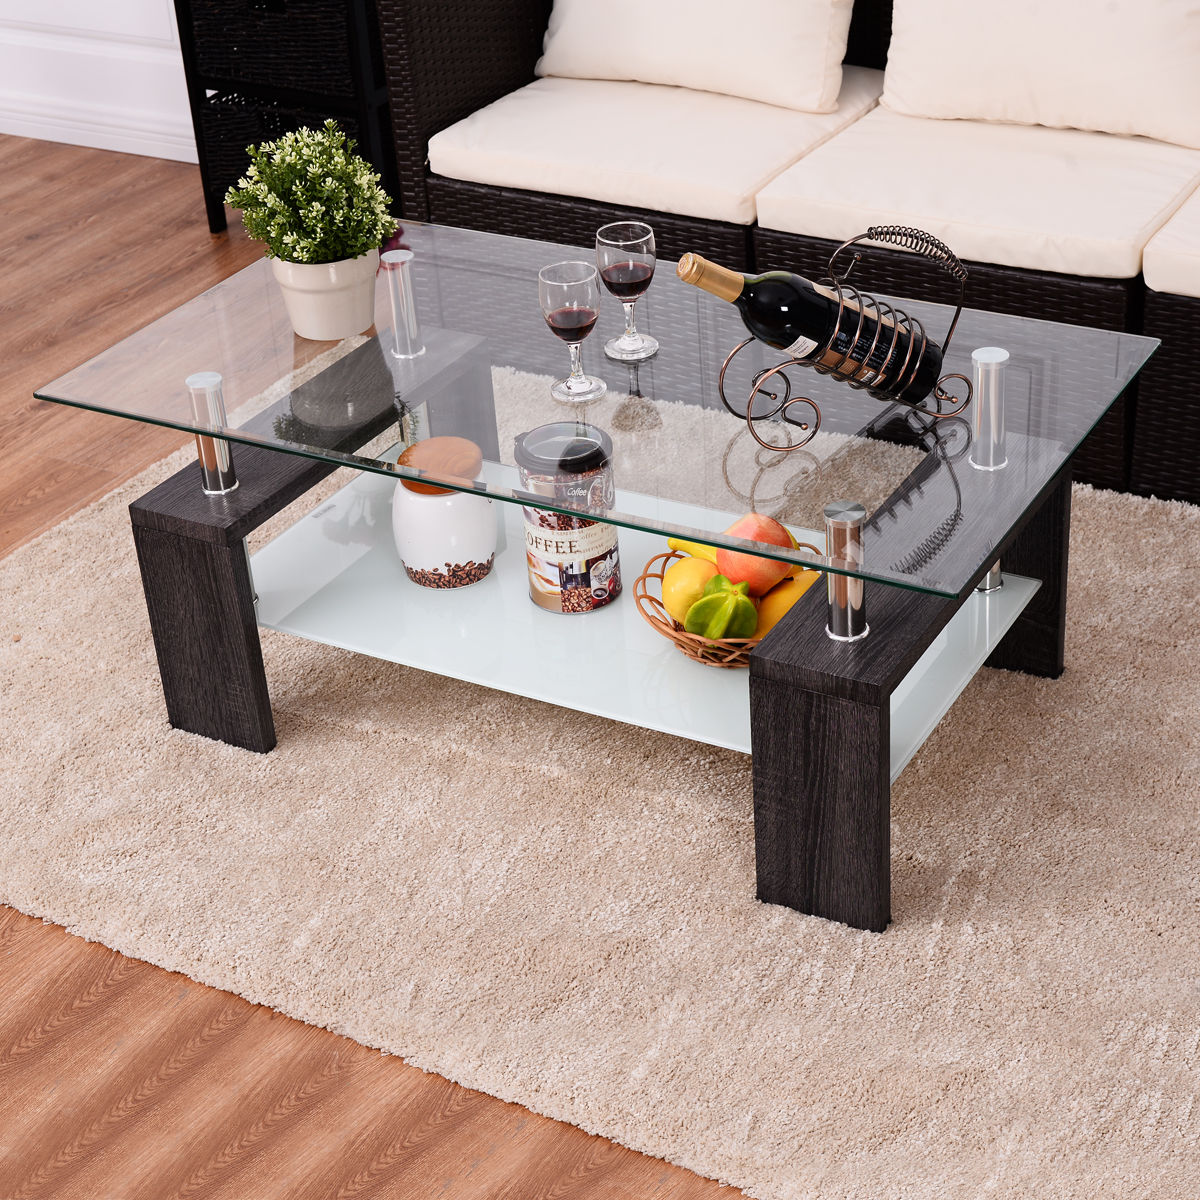 Tempered Glass Coffee Table With Drawers: Giantex Rectangular Home Tempered Glass Coffee Table With